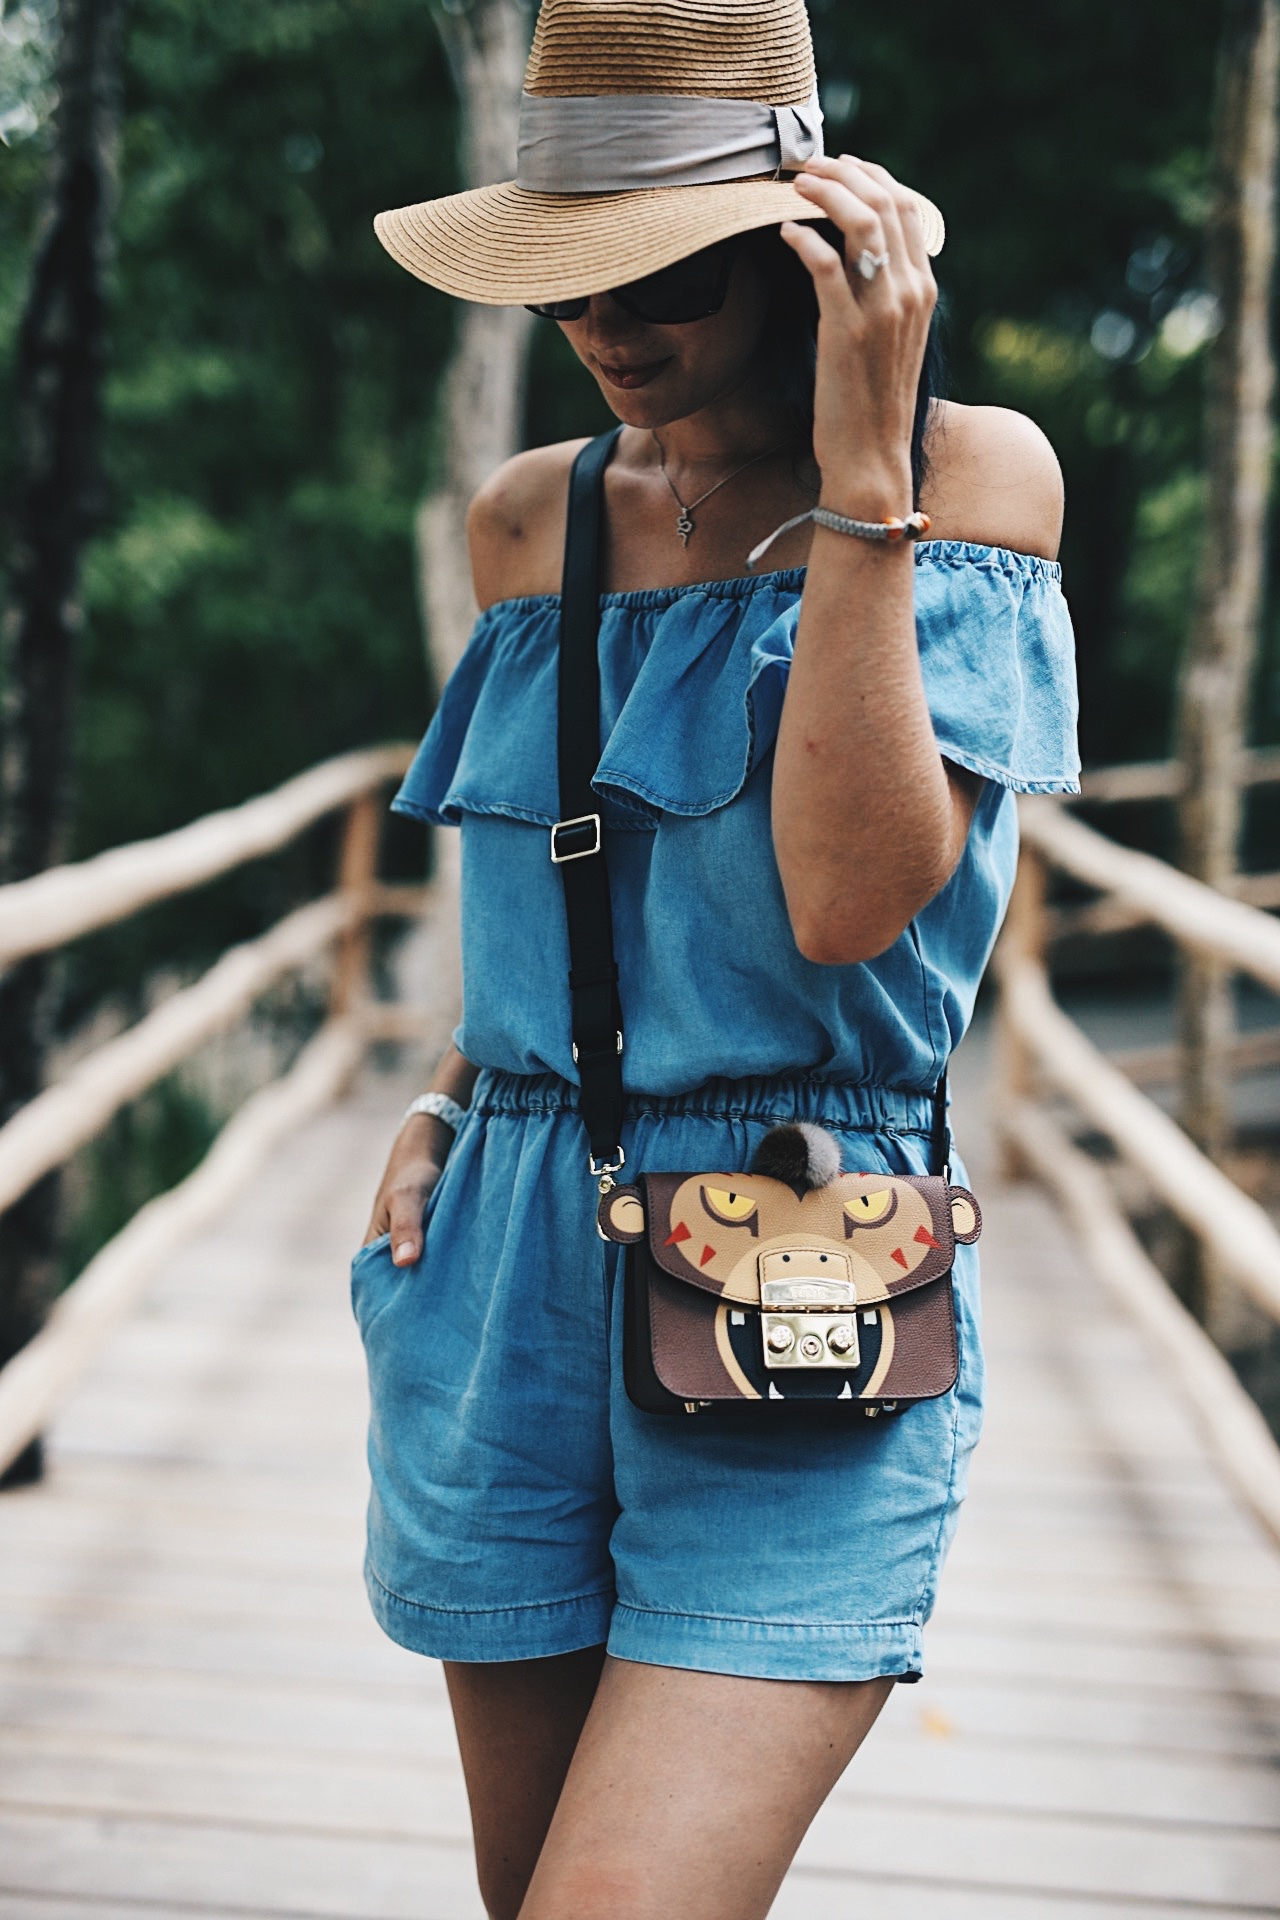 DTKAustin shares details on the most versatile Splendid chambray romper and how to wear it dressy for date night and casual on the beach. Click for more photos and details. | how to style a romper | how to wear a romper | romper style tips | summer fashion tips | summer outfit ideas | summer style tips | what to wear for summer | warm weather fashion | fashion for summer | style tips for summer | outfit ideas for summer || Dressed to Kill